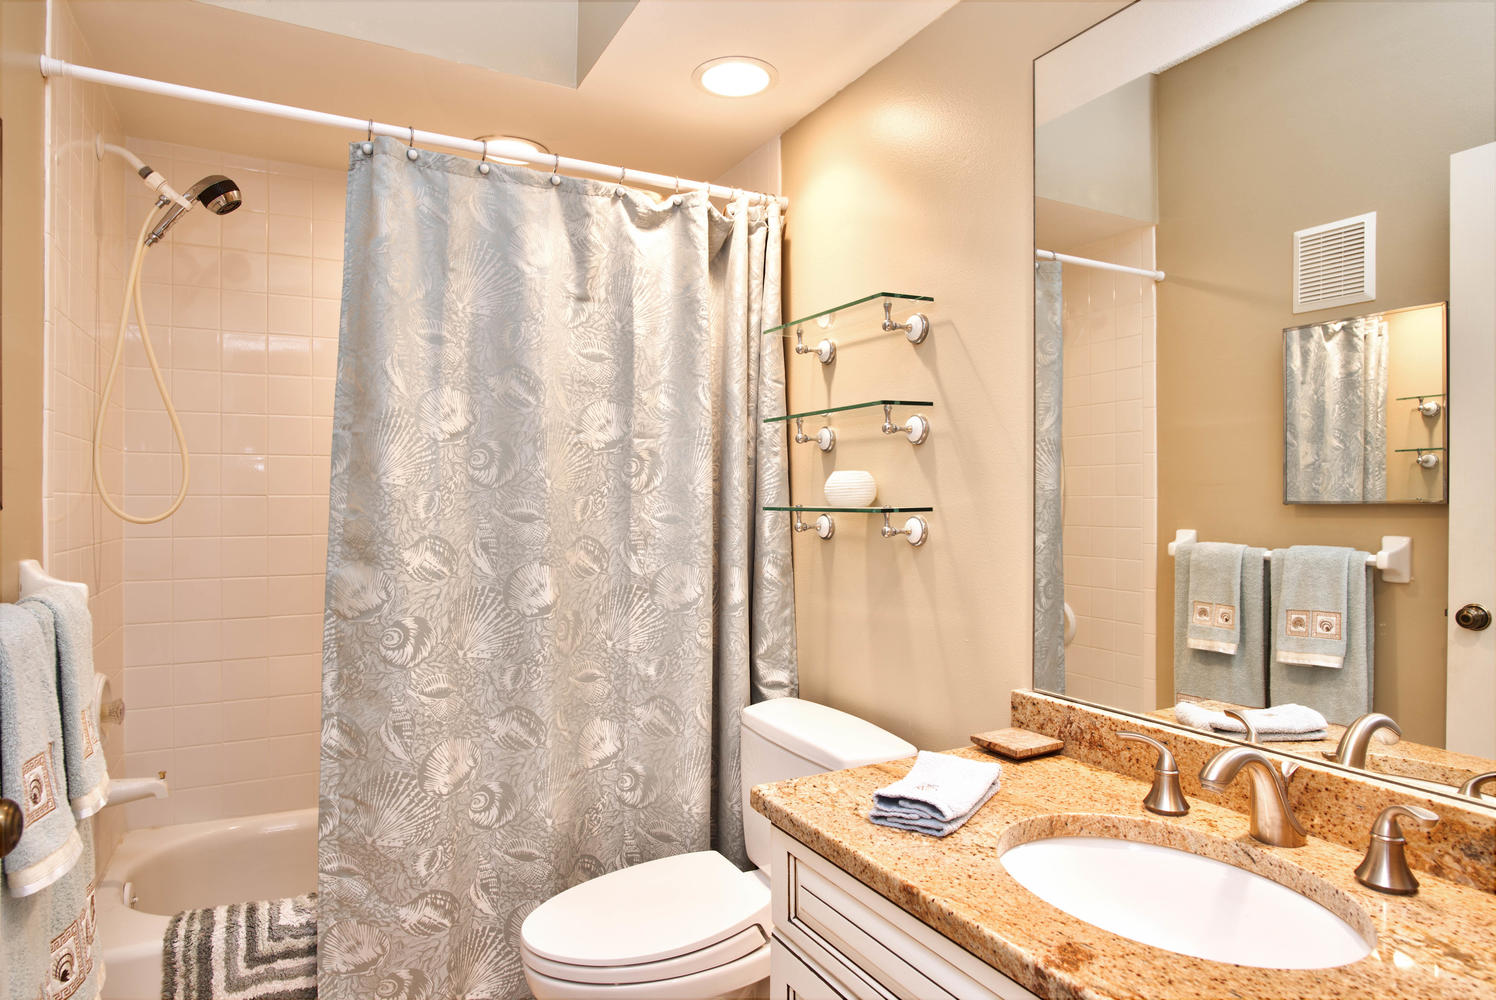 11525 Shipwatch Dr unit 1046-large-027-22-Bathroom-1497x1000-72dpi